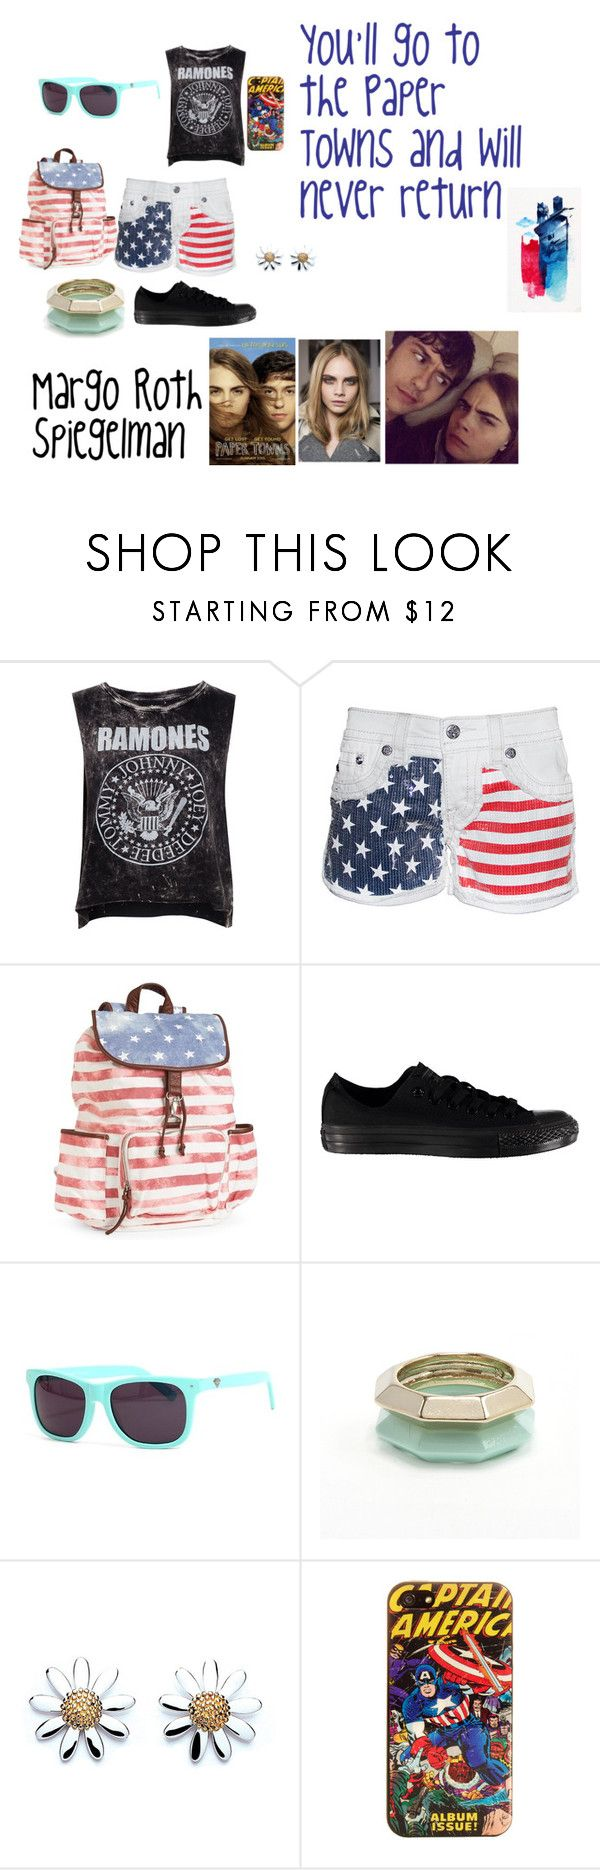 """""""Margo Roth Spiegelman outfit"""" by allie-peay ❤ liked on Polyvore featuring Pull&Bear, Aéropostale, Converse, Diamond Supply Co., Daisy Jewellery and Marvel Comics"""